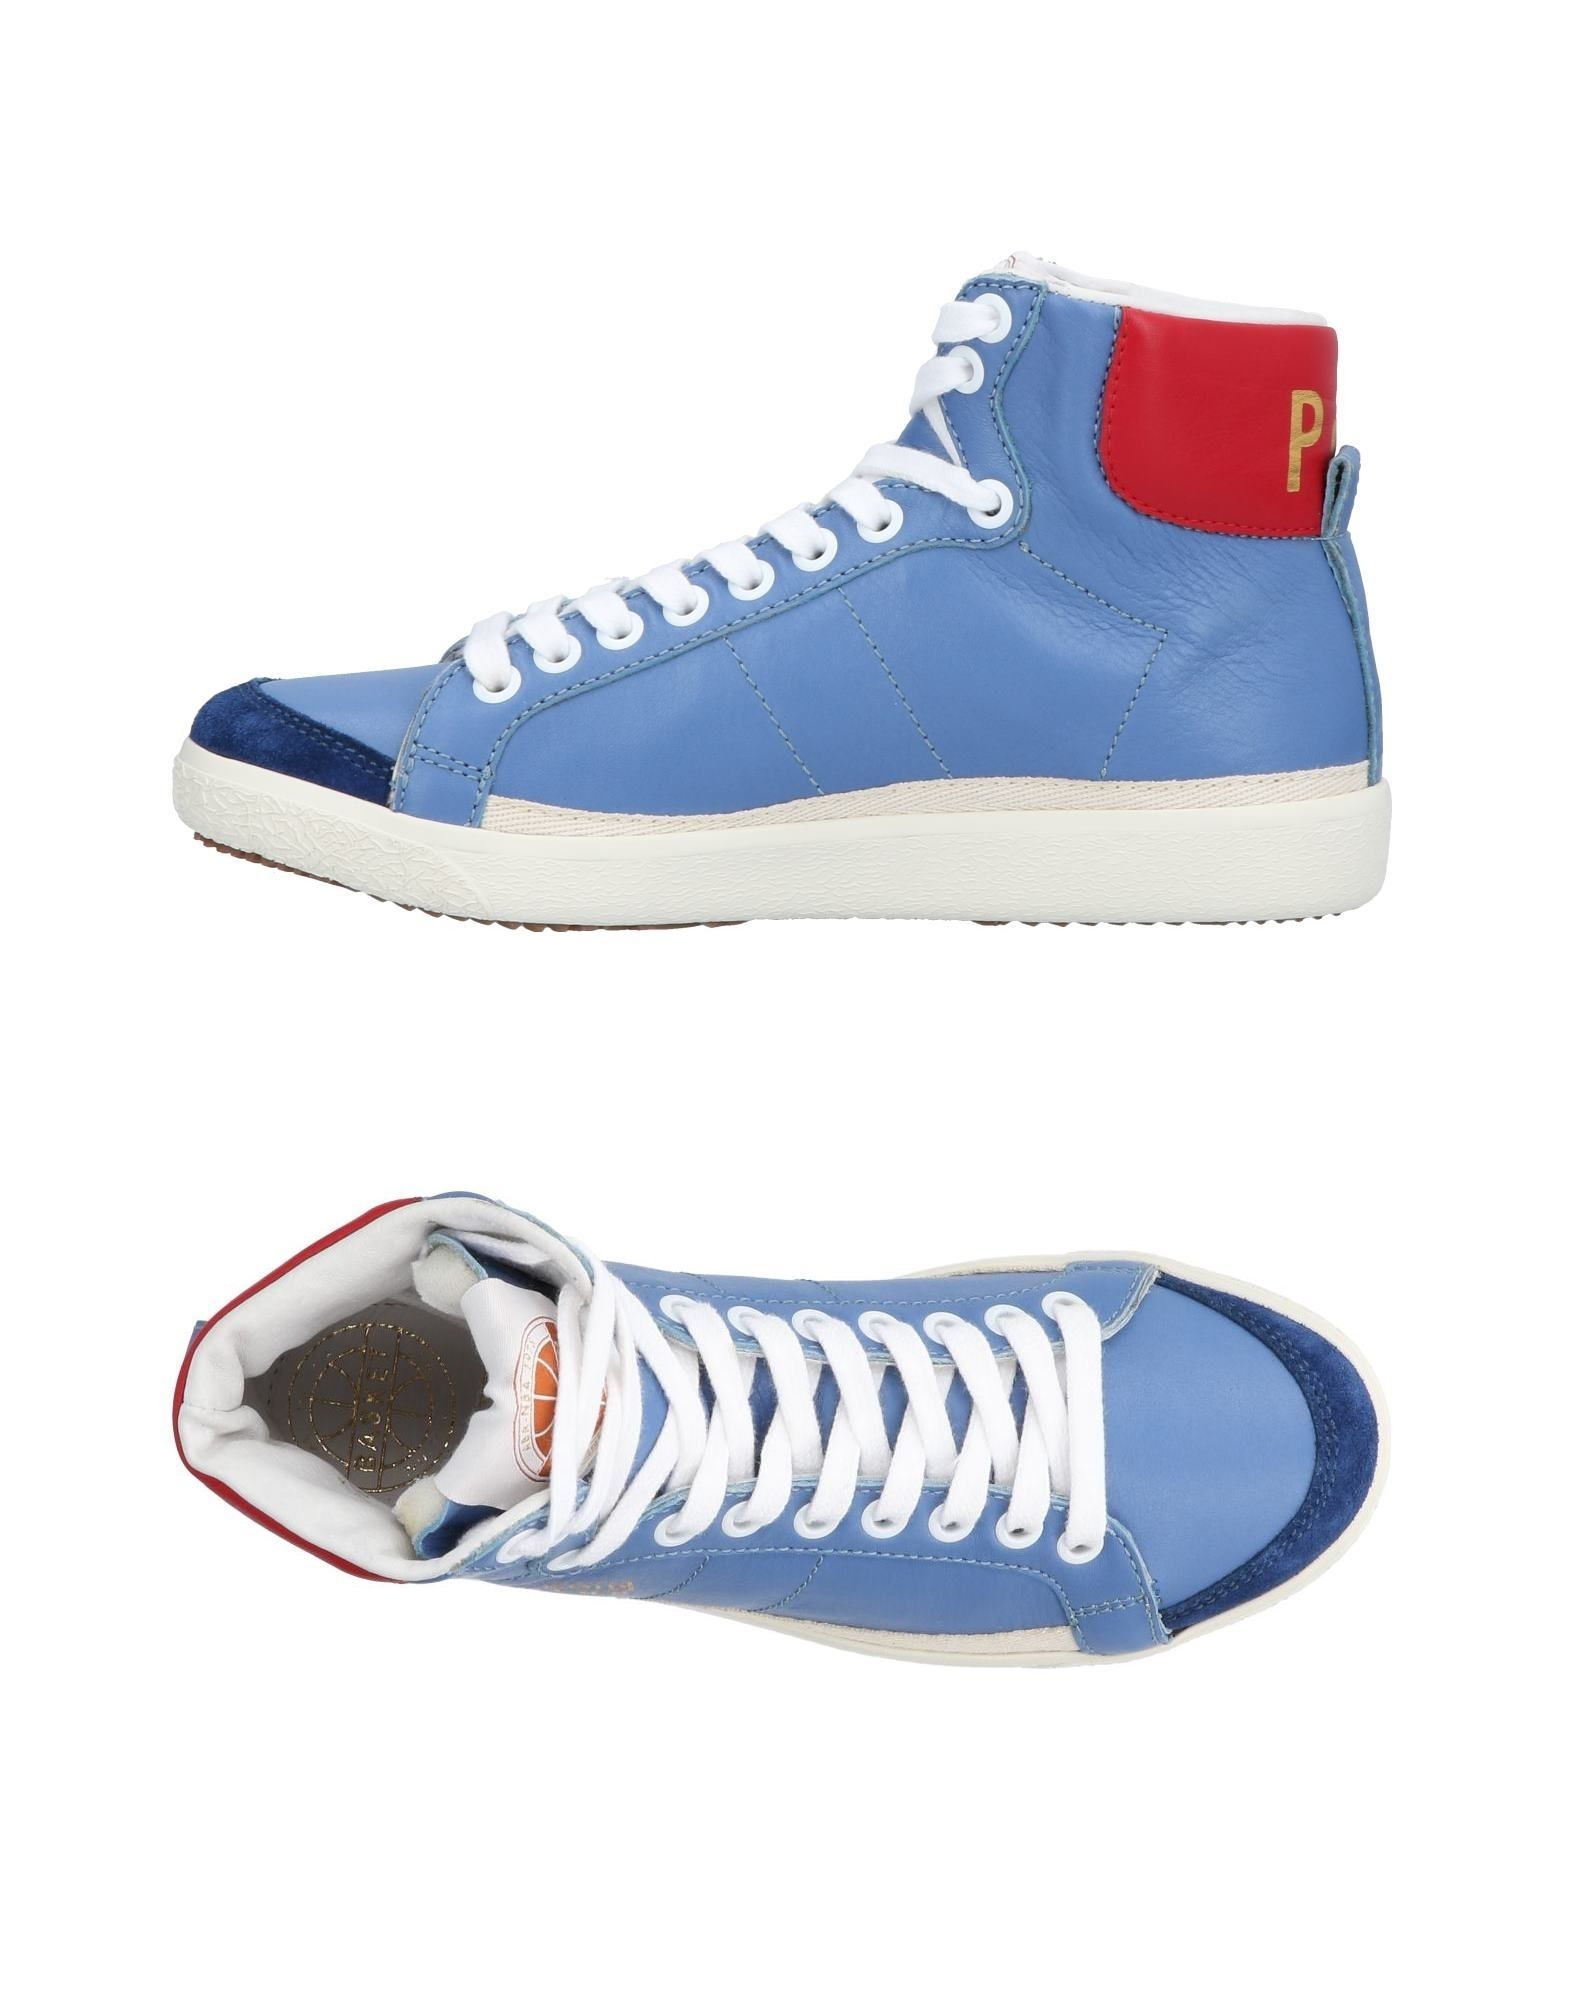 Sneakers Pantofola D'oro Donna - 11456090HW